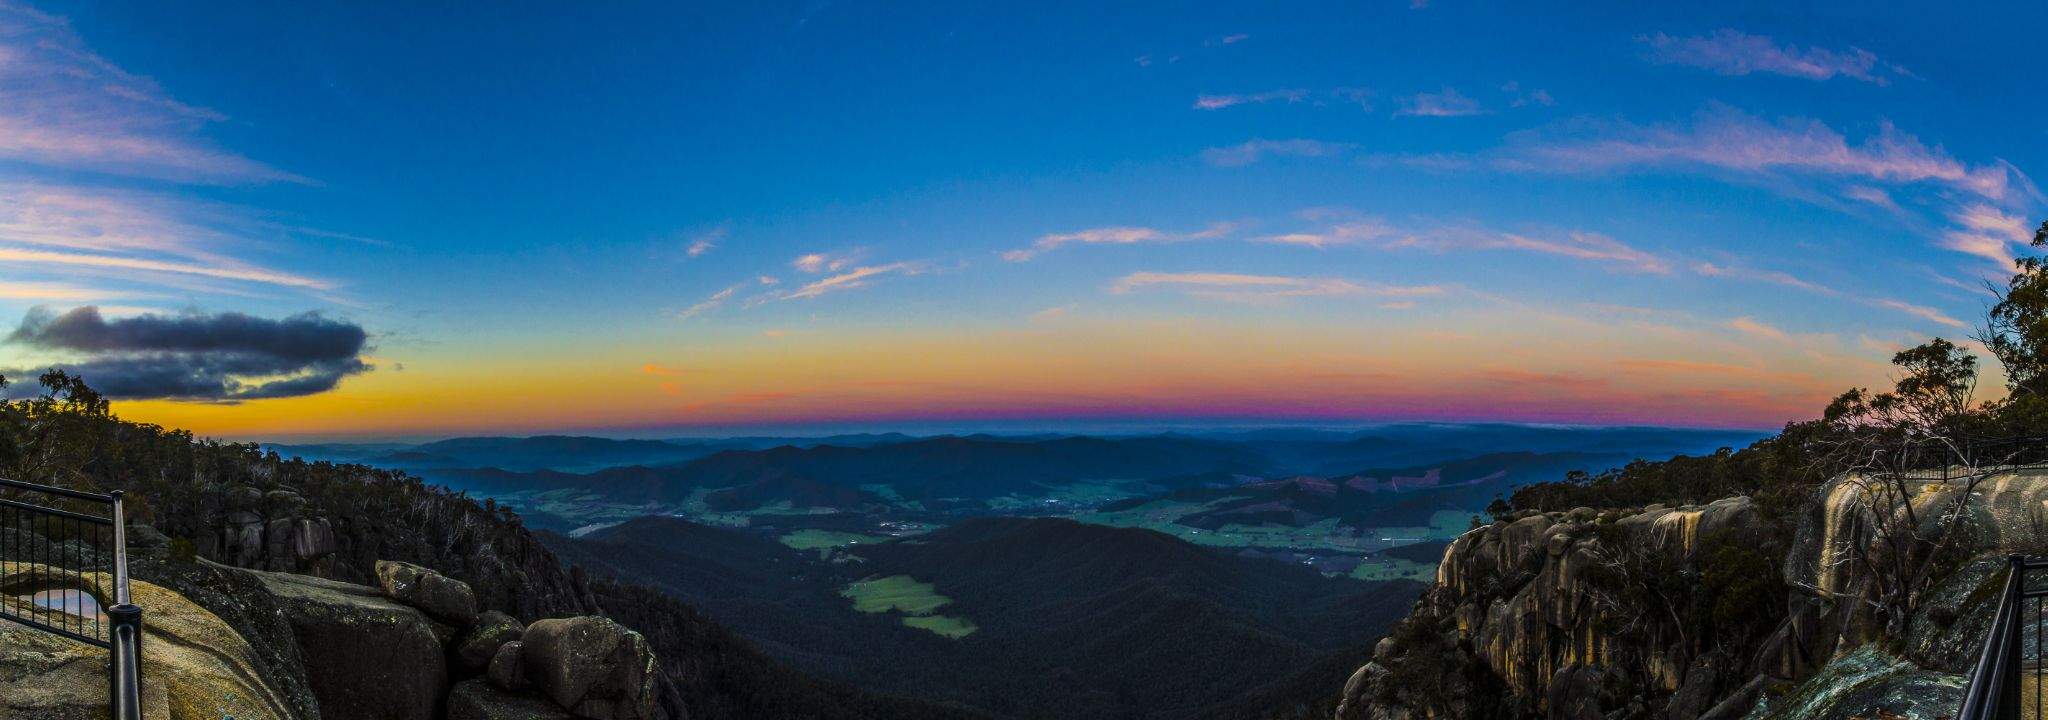 Mount Buffalo by duanne.anderson